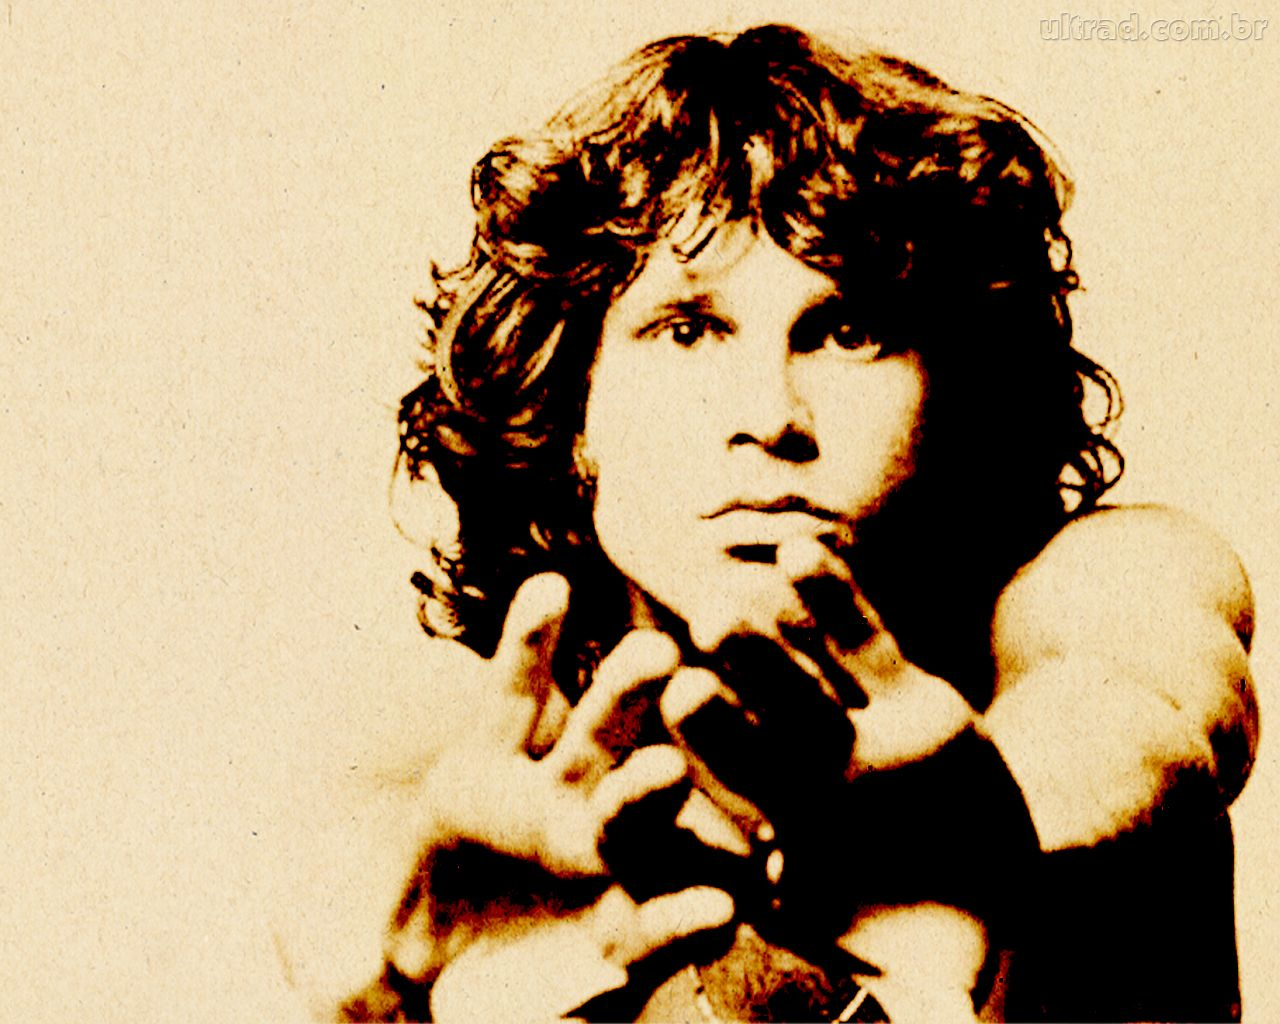 Jim Morrison Wallpapers Music Hq Jim Morrison Pictures 4k